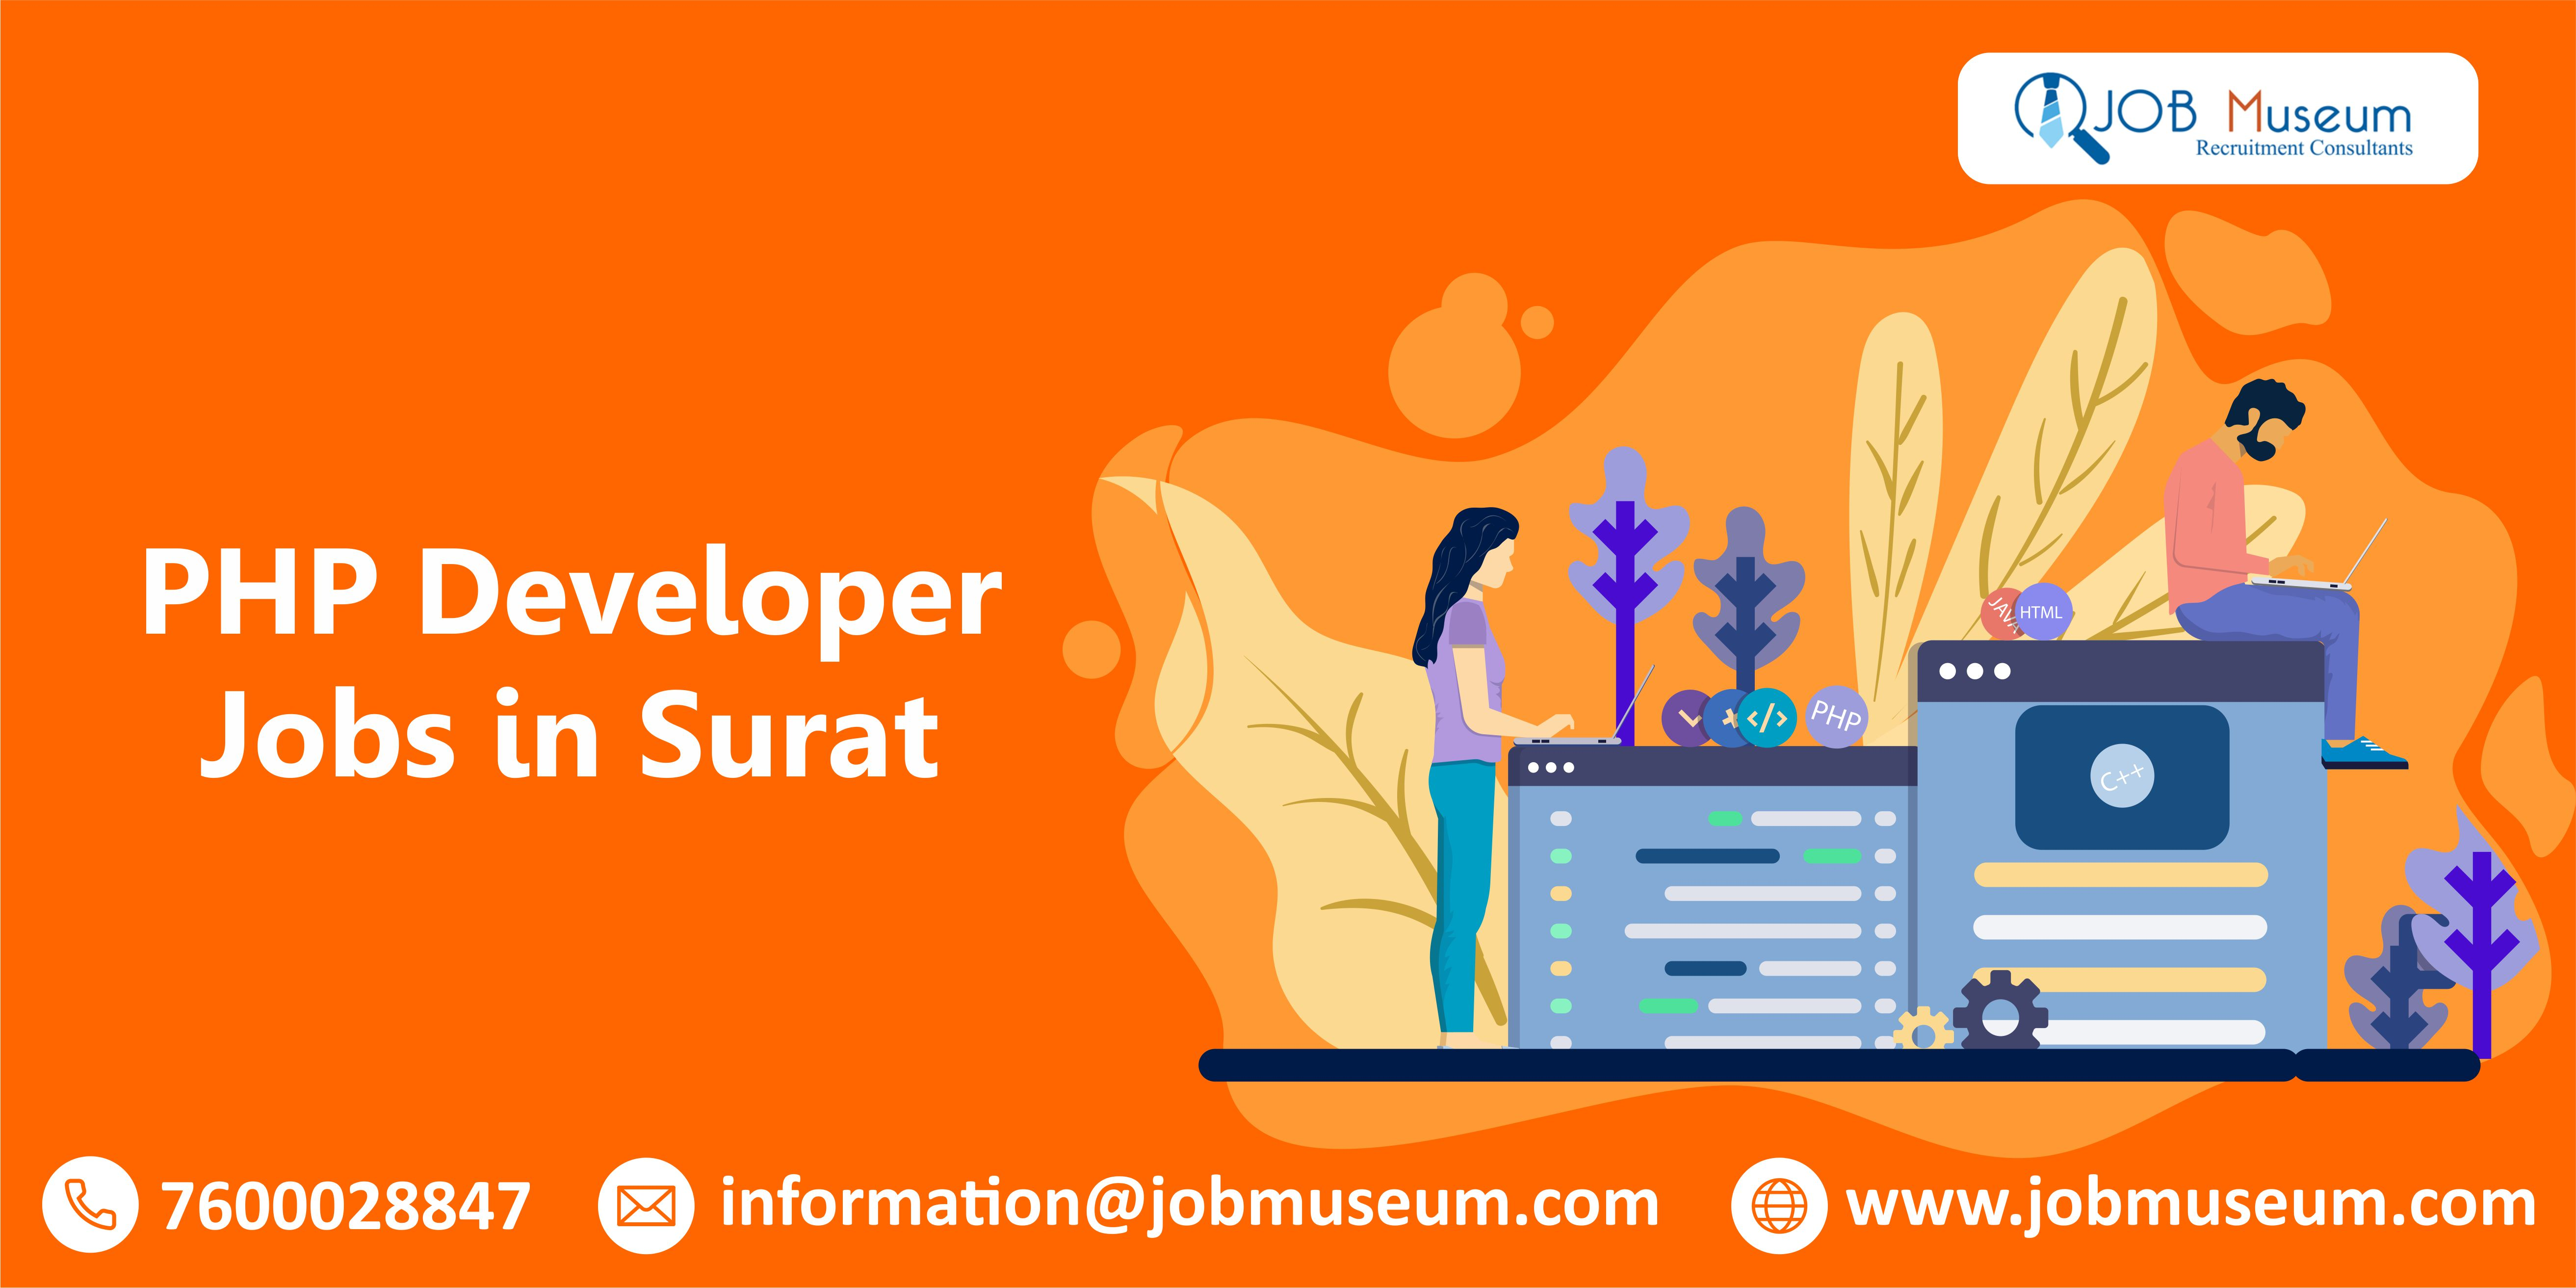 PHP Developer Jobs in Surat